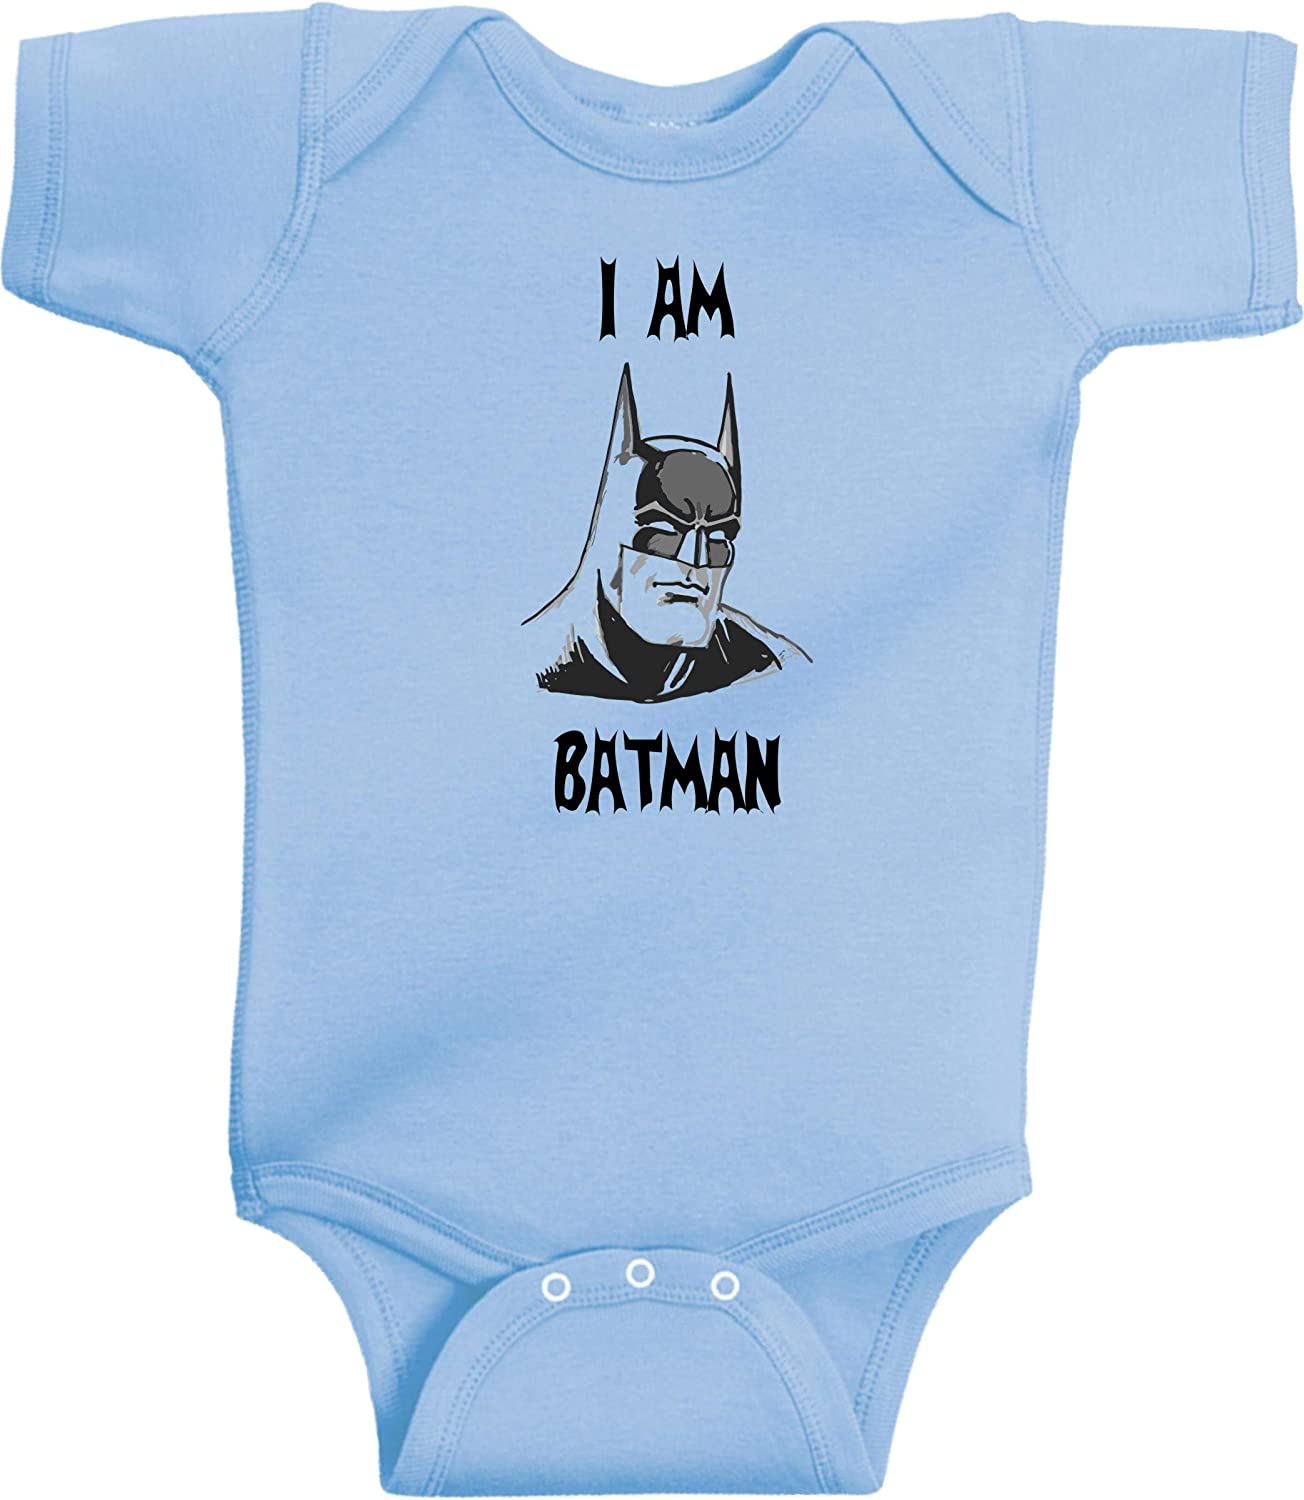 12 Months, Pink I Am Batman Funny Super Hero Onesie by BeeGeeTees